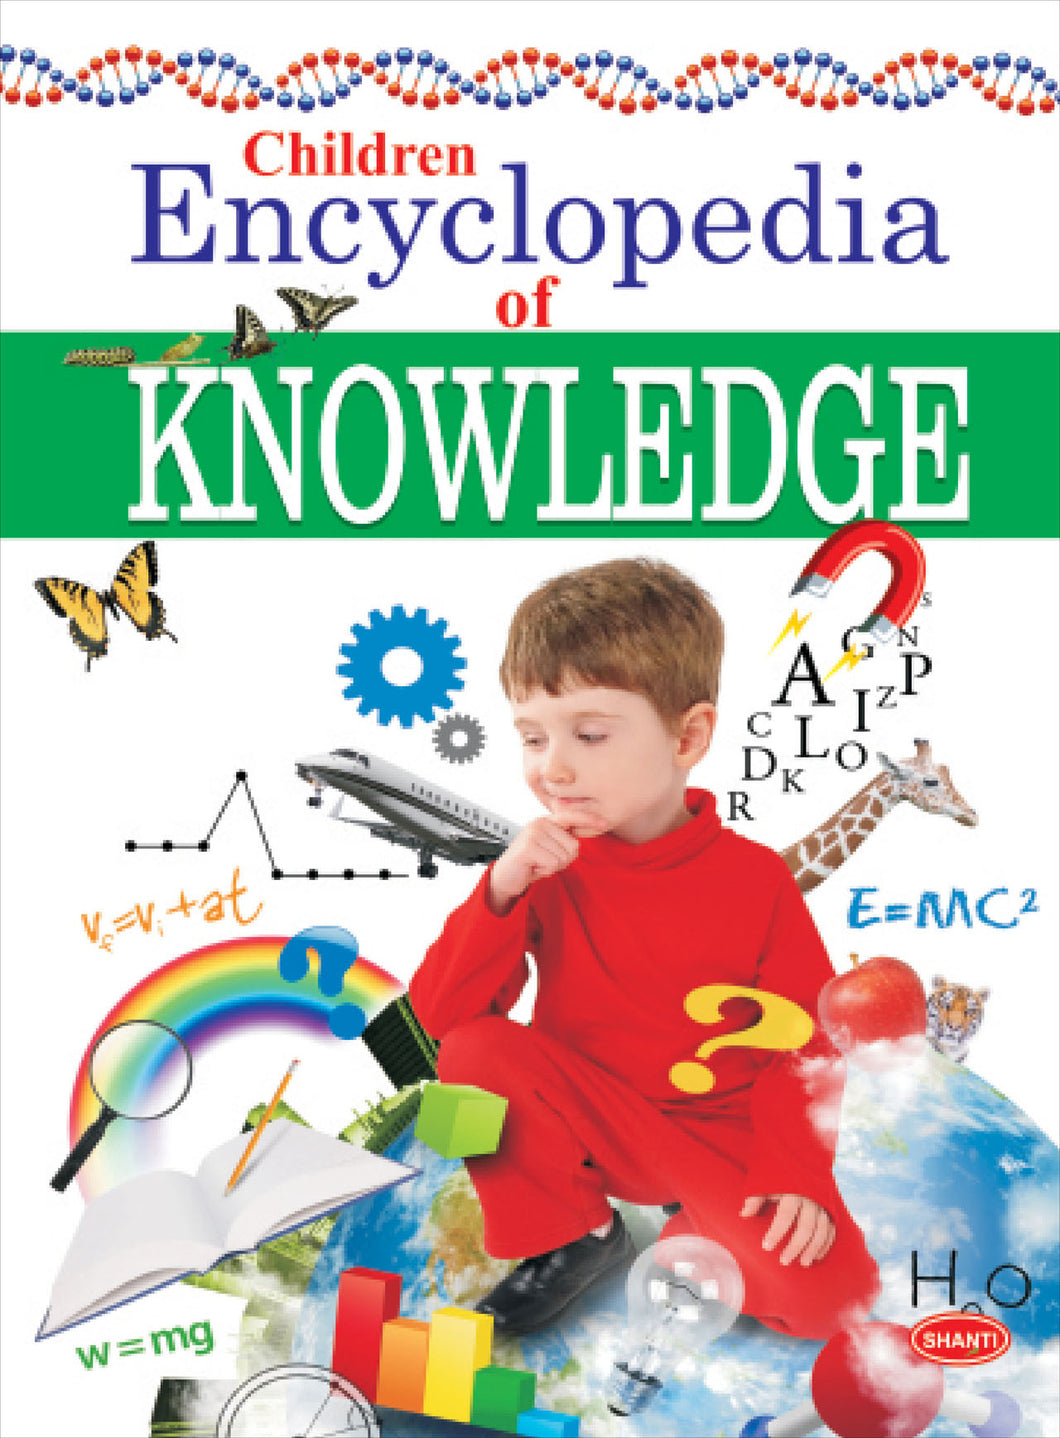 encyclopedia for children-Children Encyclopedia of Knowledge_Green